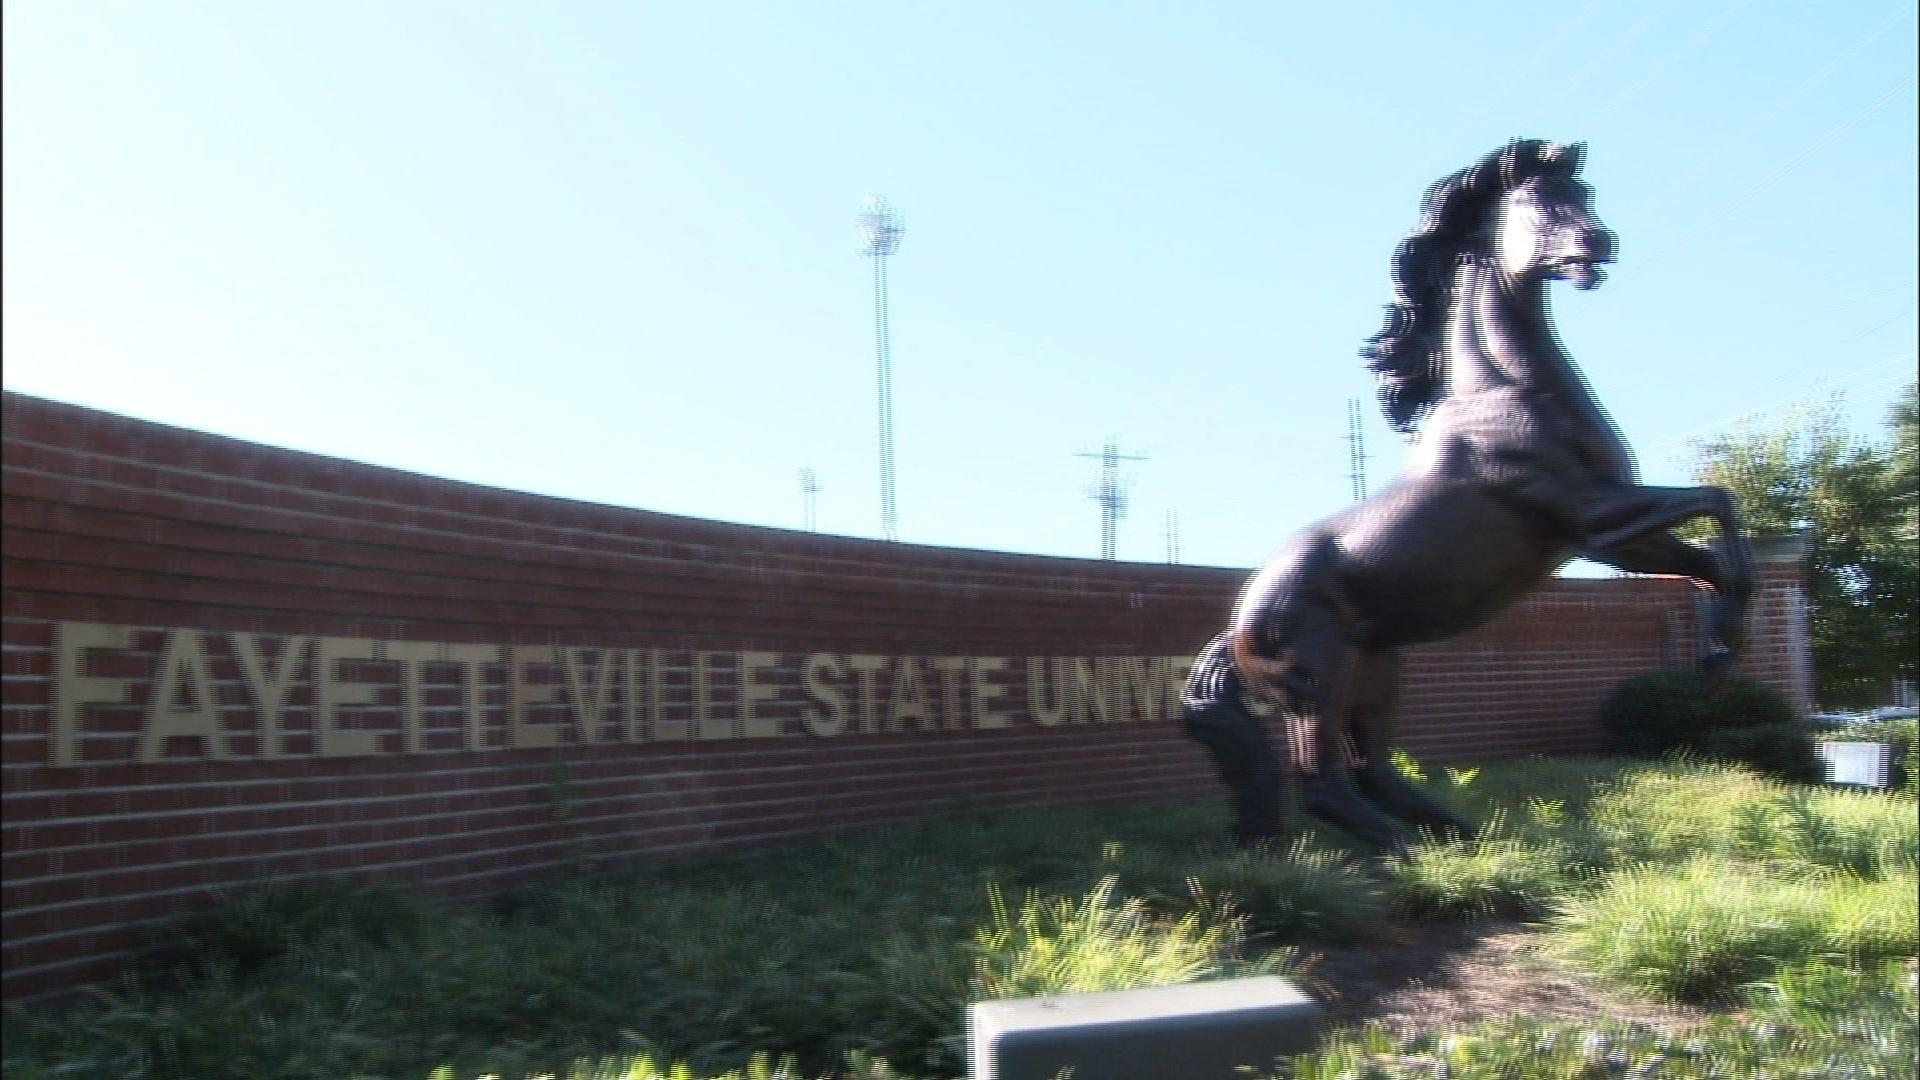 Video Fayetteville State University Watch The